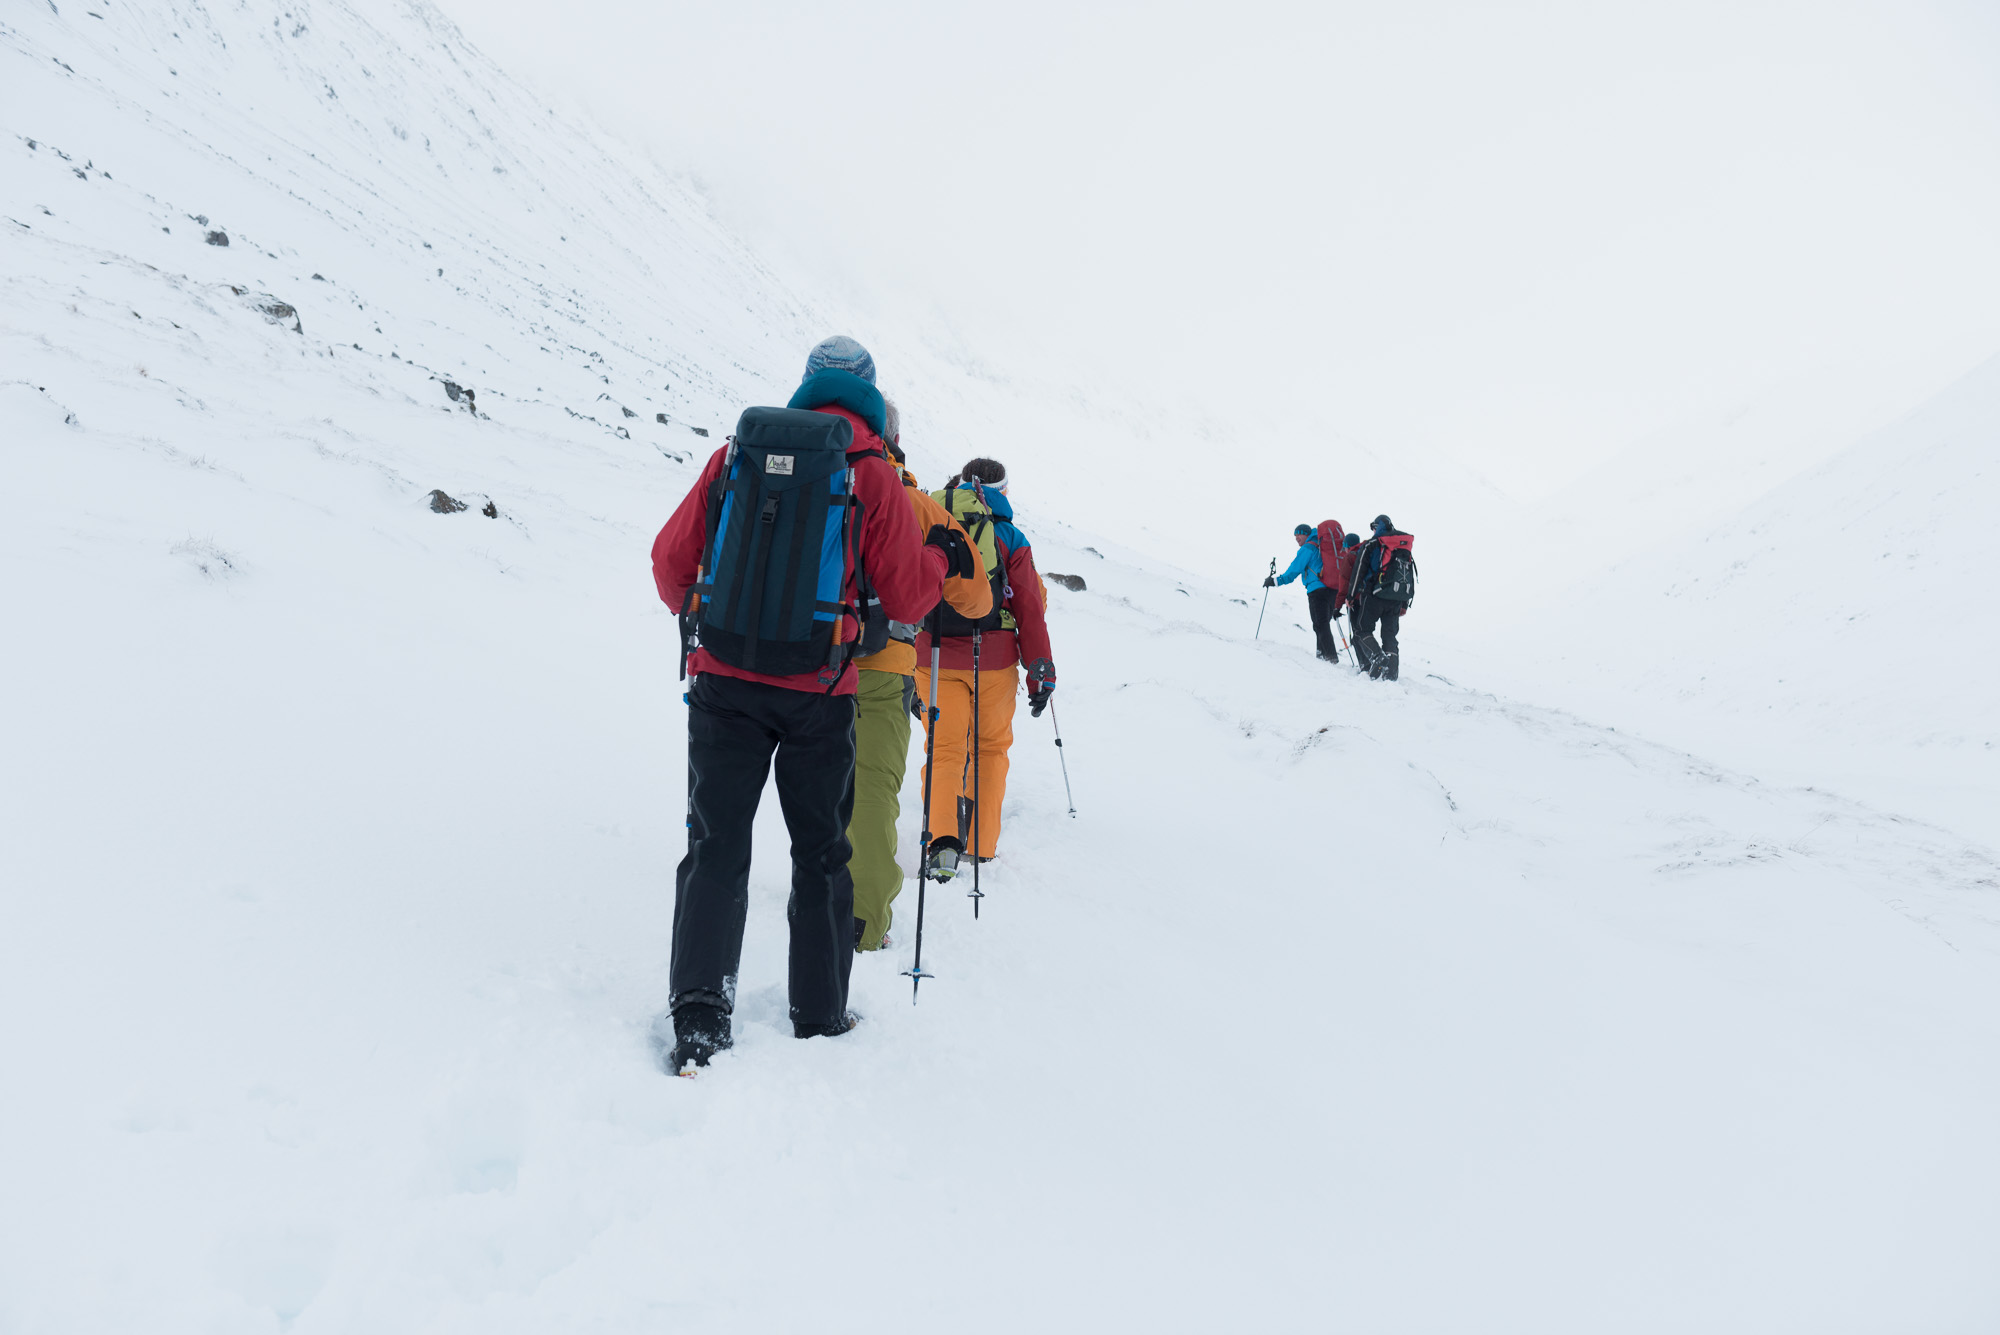 Two groups of climbers walk towards the horizon in snow. The sky is foggy / overcast and blending in with the ground. The climbers are all wearing brightly coloured clothing.